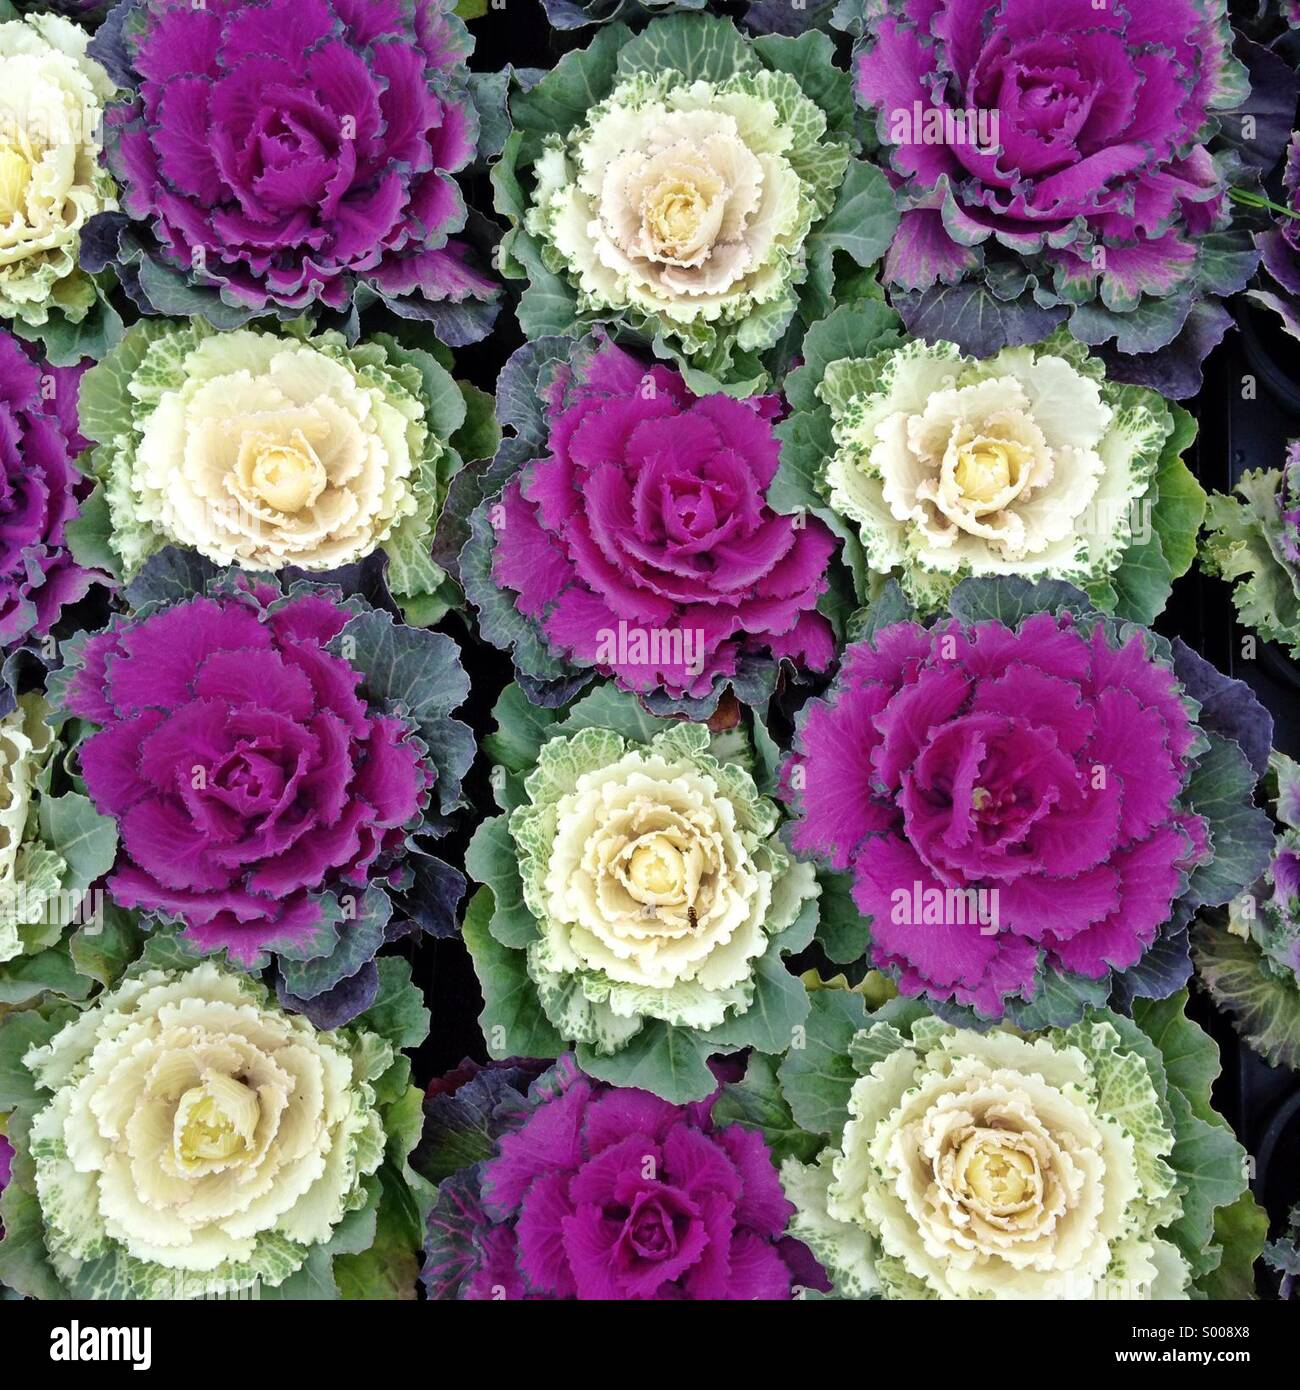 Close up of Ornamental Cabbage/Flowering Cabbage (Brassica oleracea). This flowers can be use as decorative, plant - Stock Image